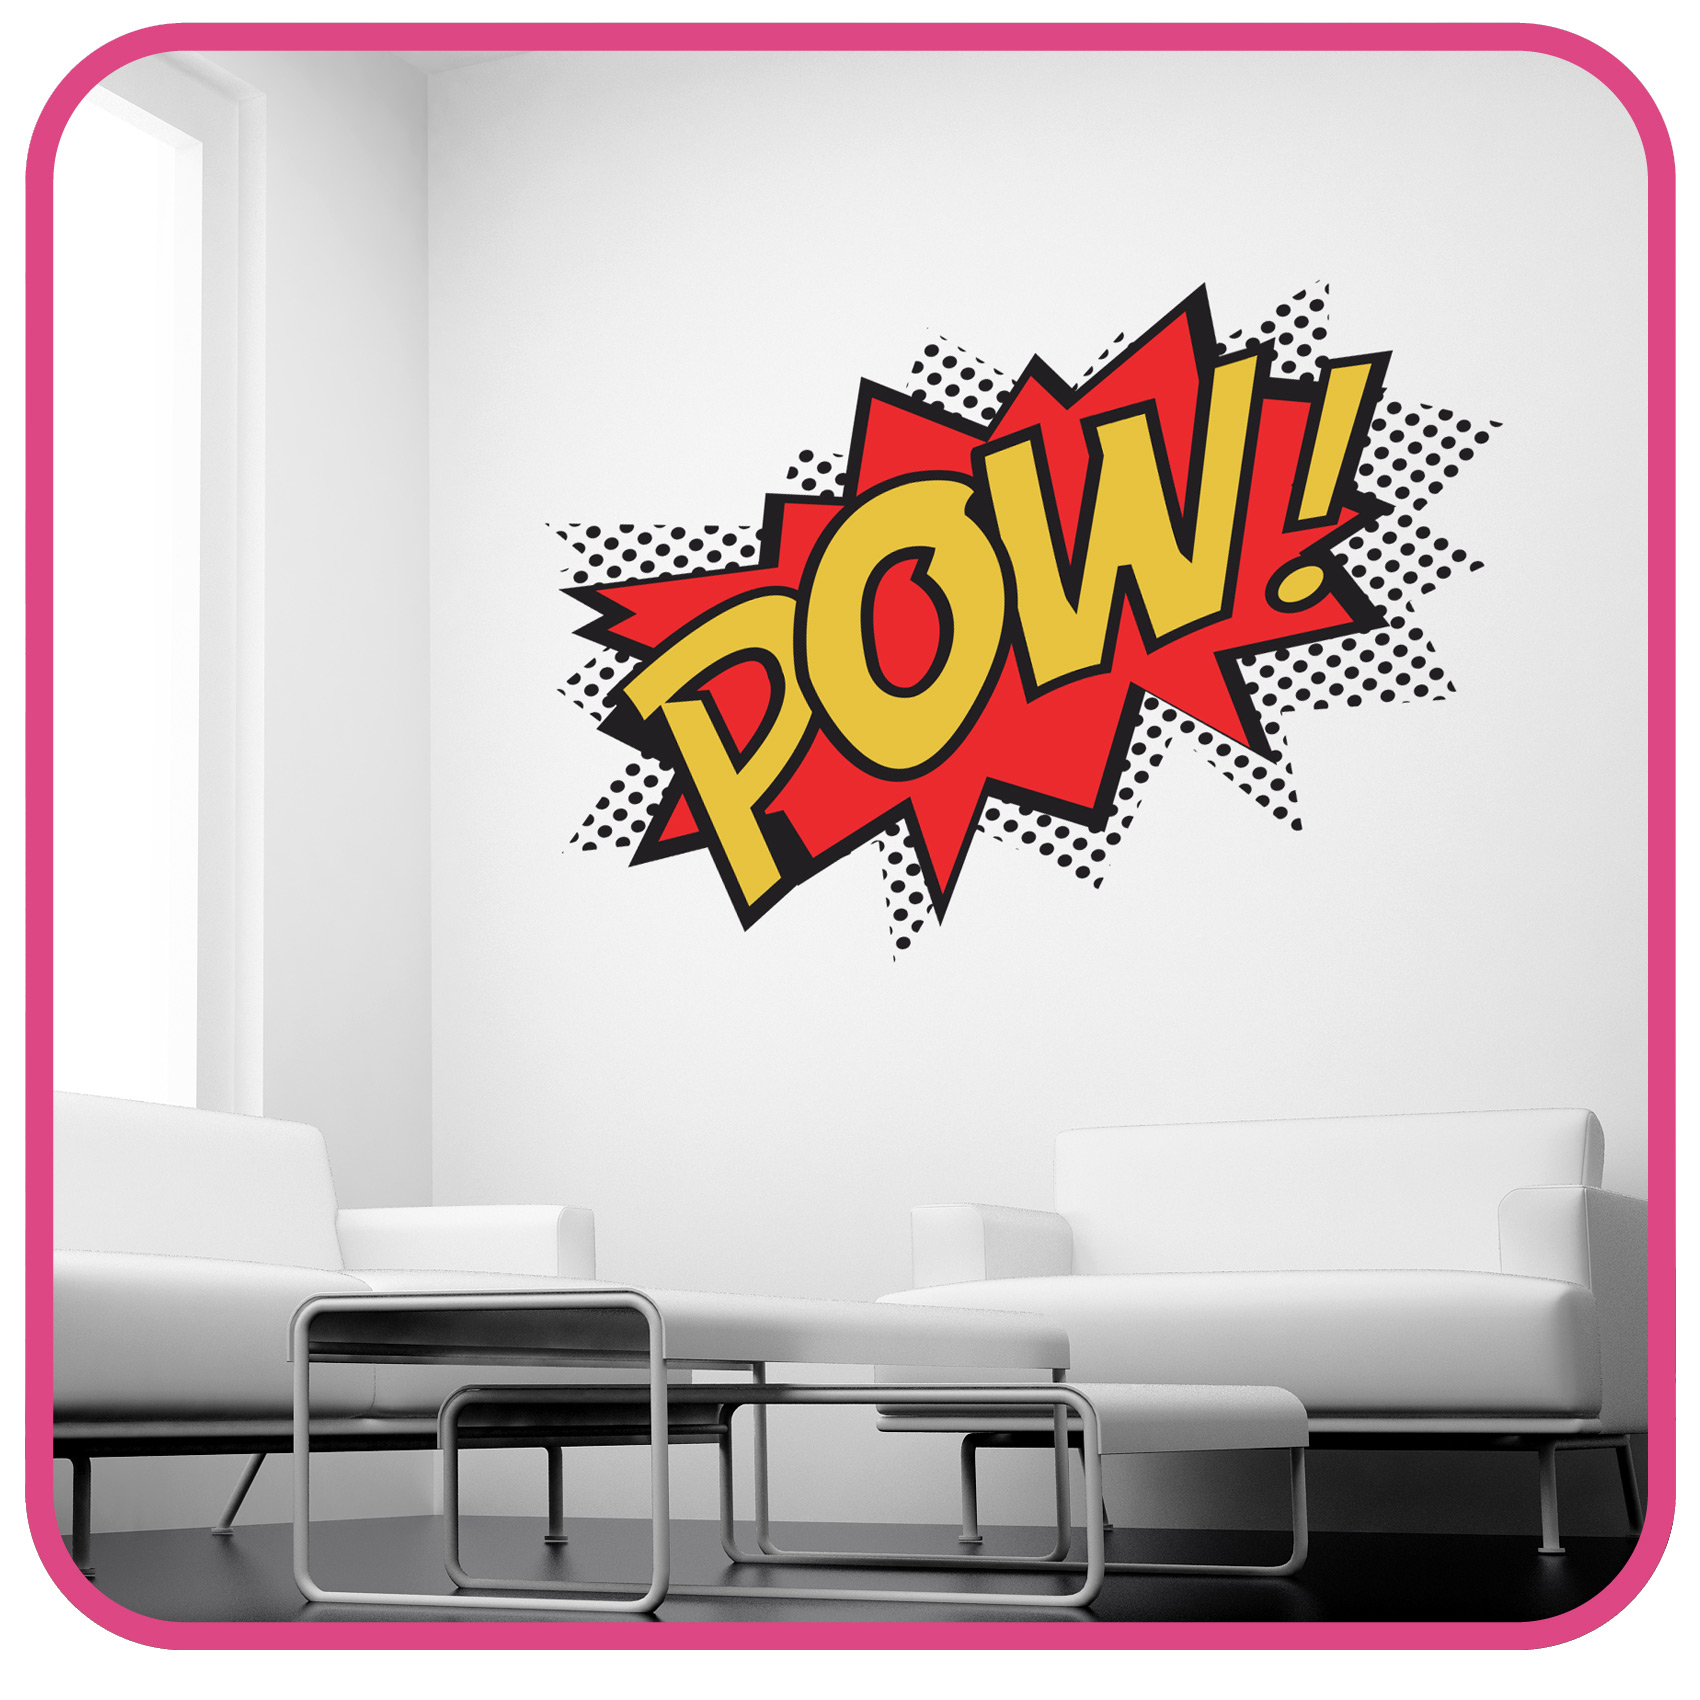 Pow wall sticker superhero kids comic art decals k27 ebay please use the dropdown tab at the top of the page to select your colour and size requirements amipublicfo Gallery